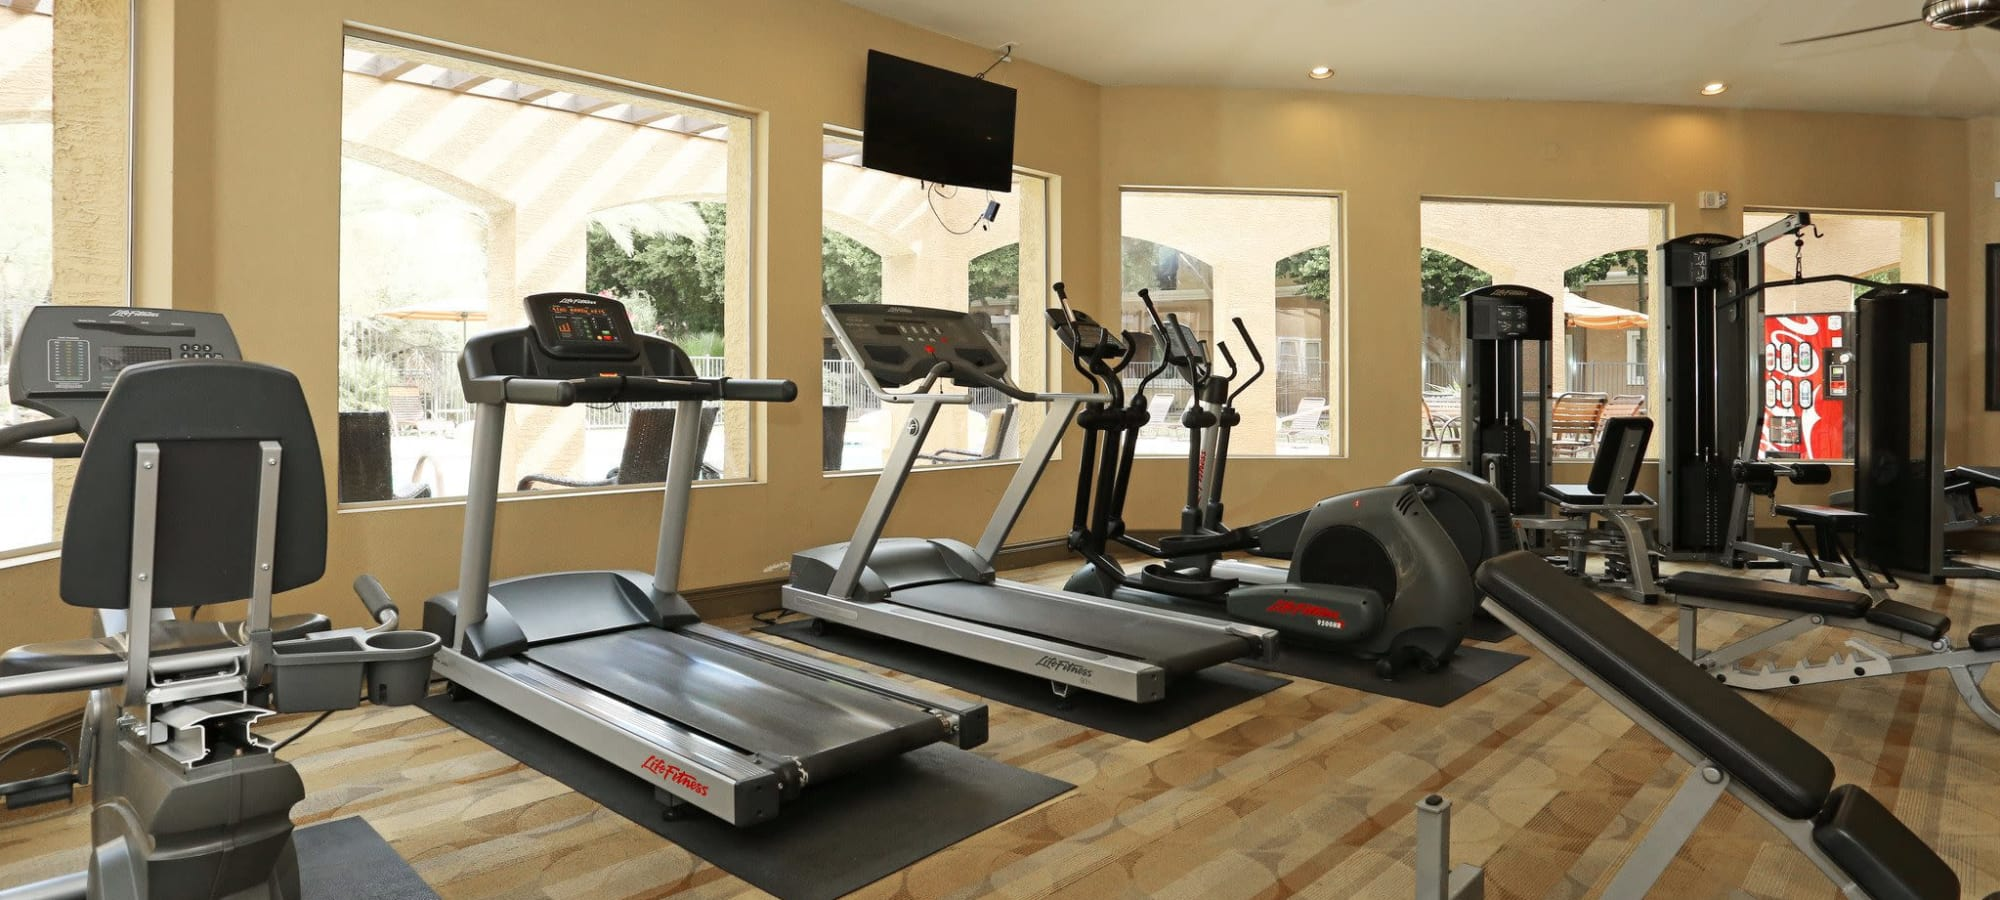 Community gym at The Regents at Scottsdale in Scottsdale, Arizona